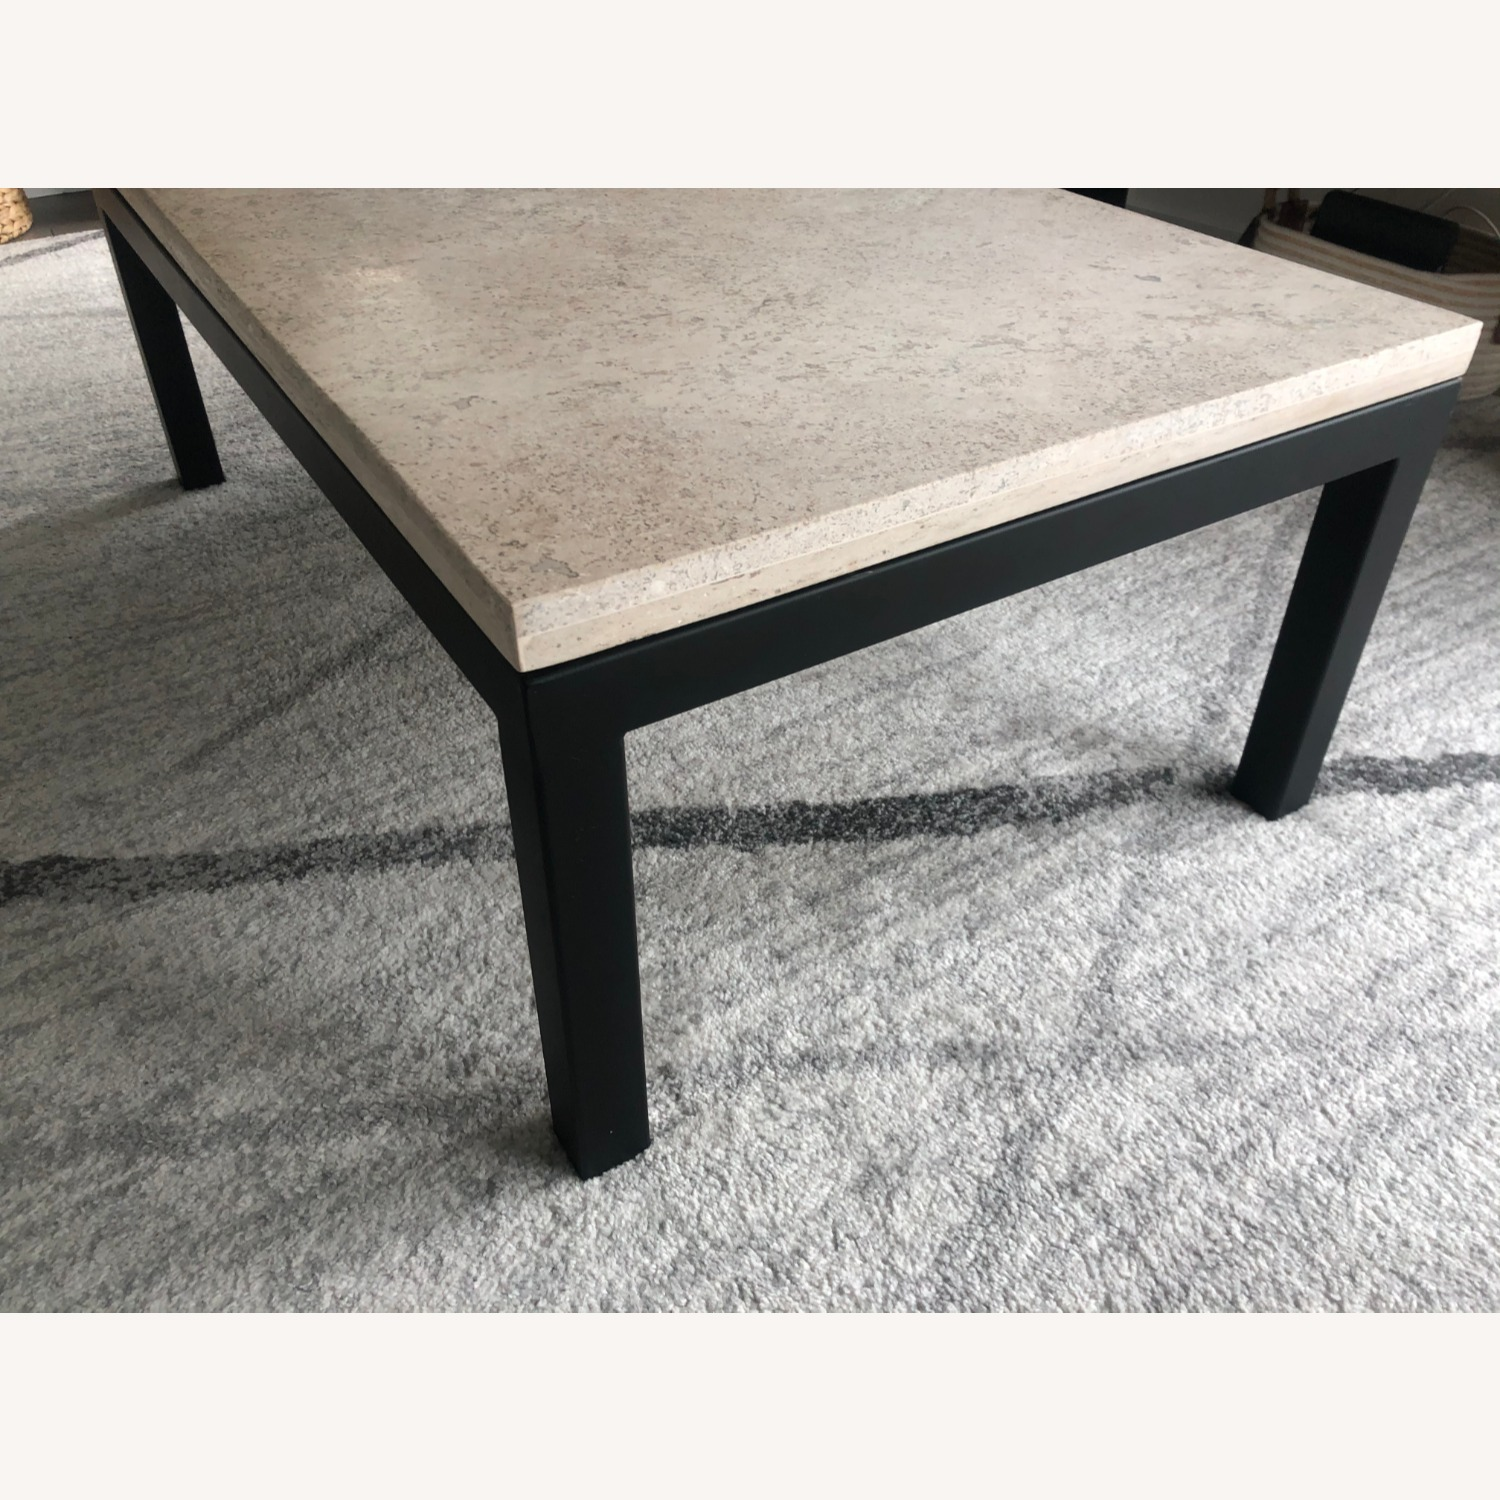 Crate & Barrel Natural Color Modern Coffee Table - image-2